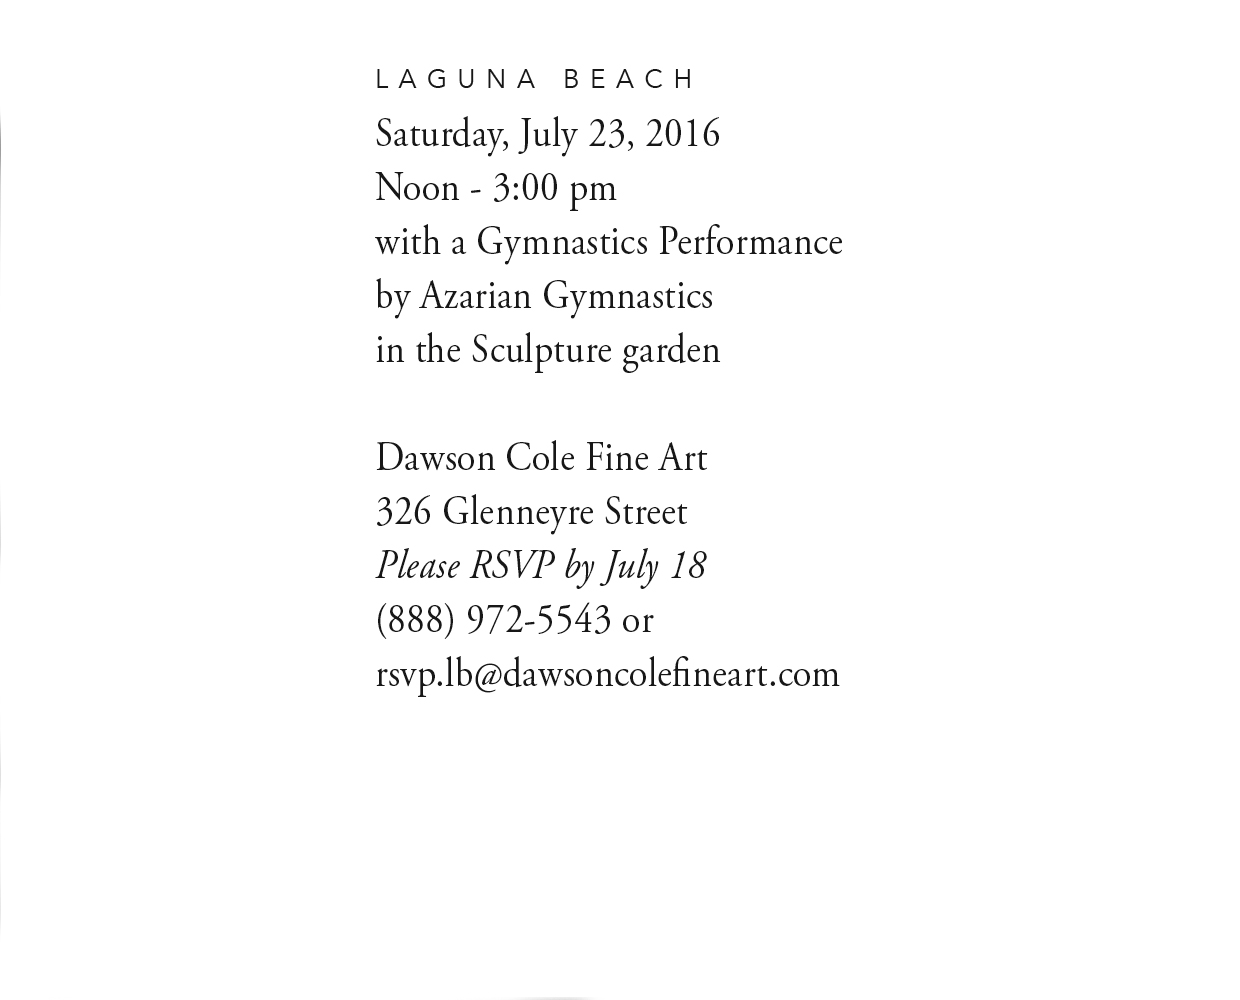 Special Invitation to Dawson Cole Fine Art -  Carmel, on Saturday, July 23, 2016, Noon to 3:00 PM. Please RSVP by July 18 to (888) 972-5543 or rsvp.lb@dawsoncolefineart.com